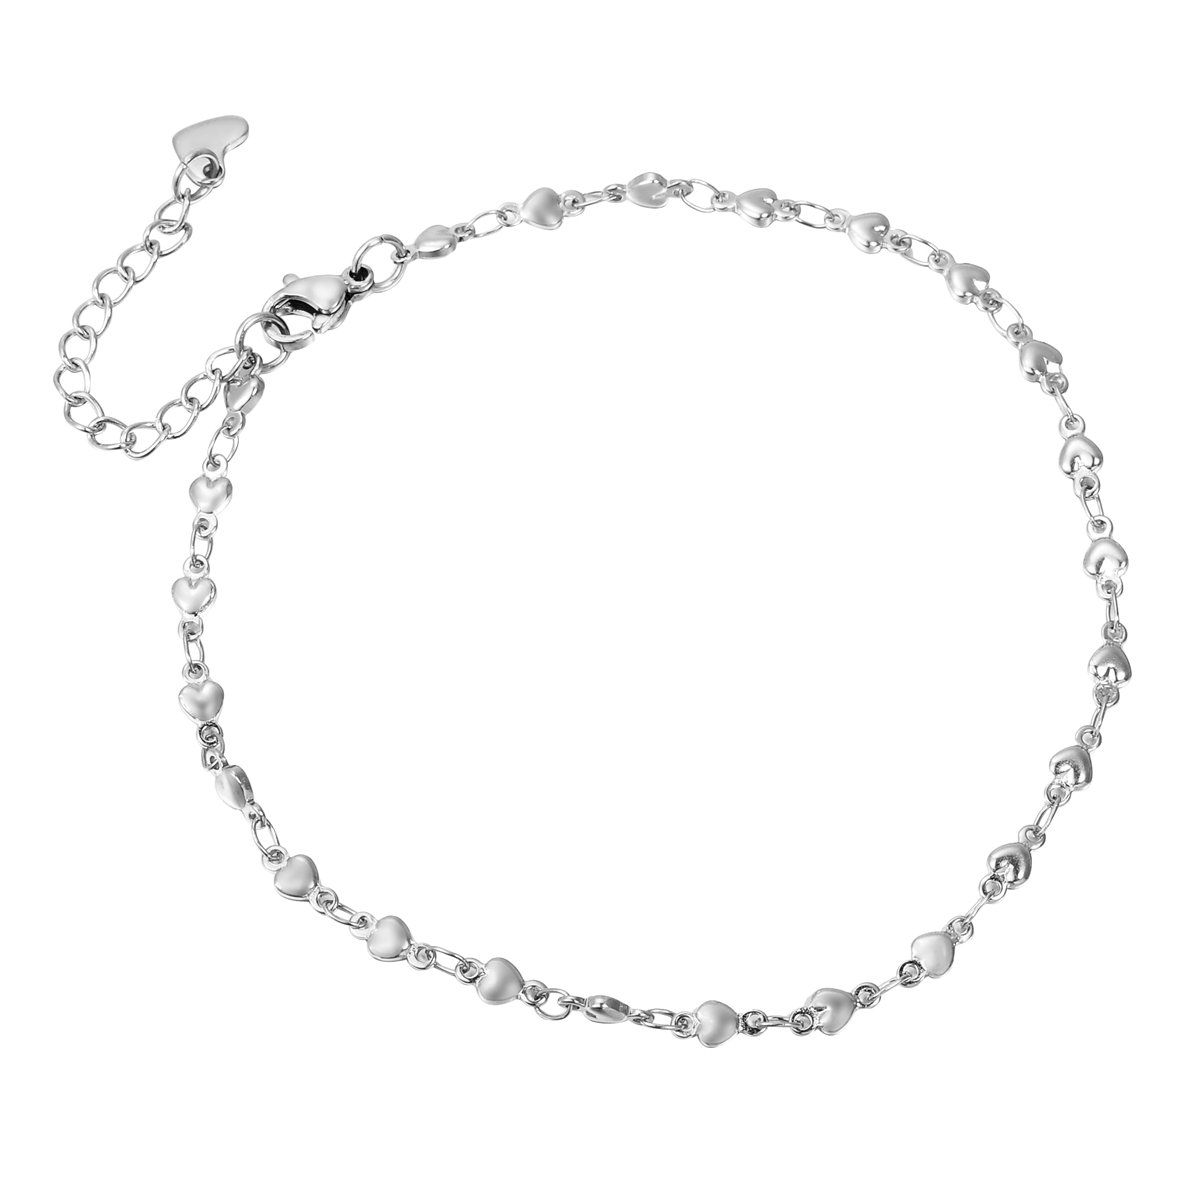 HooAMI Stainless Steel Silver Heart Link Chain Anklet Adjustable 24cm+4cm TY BETY106657